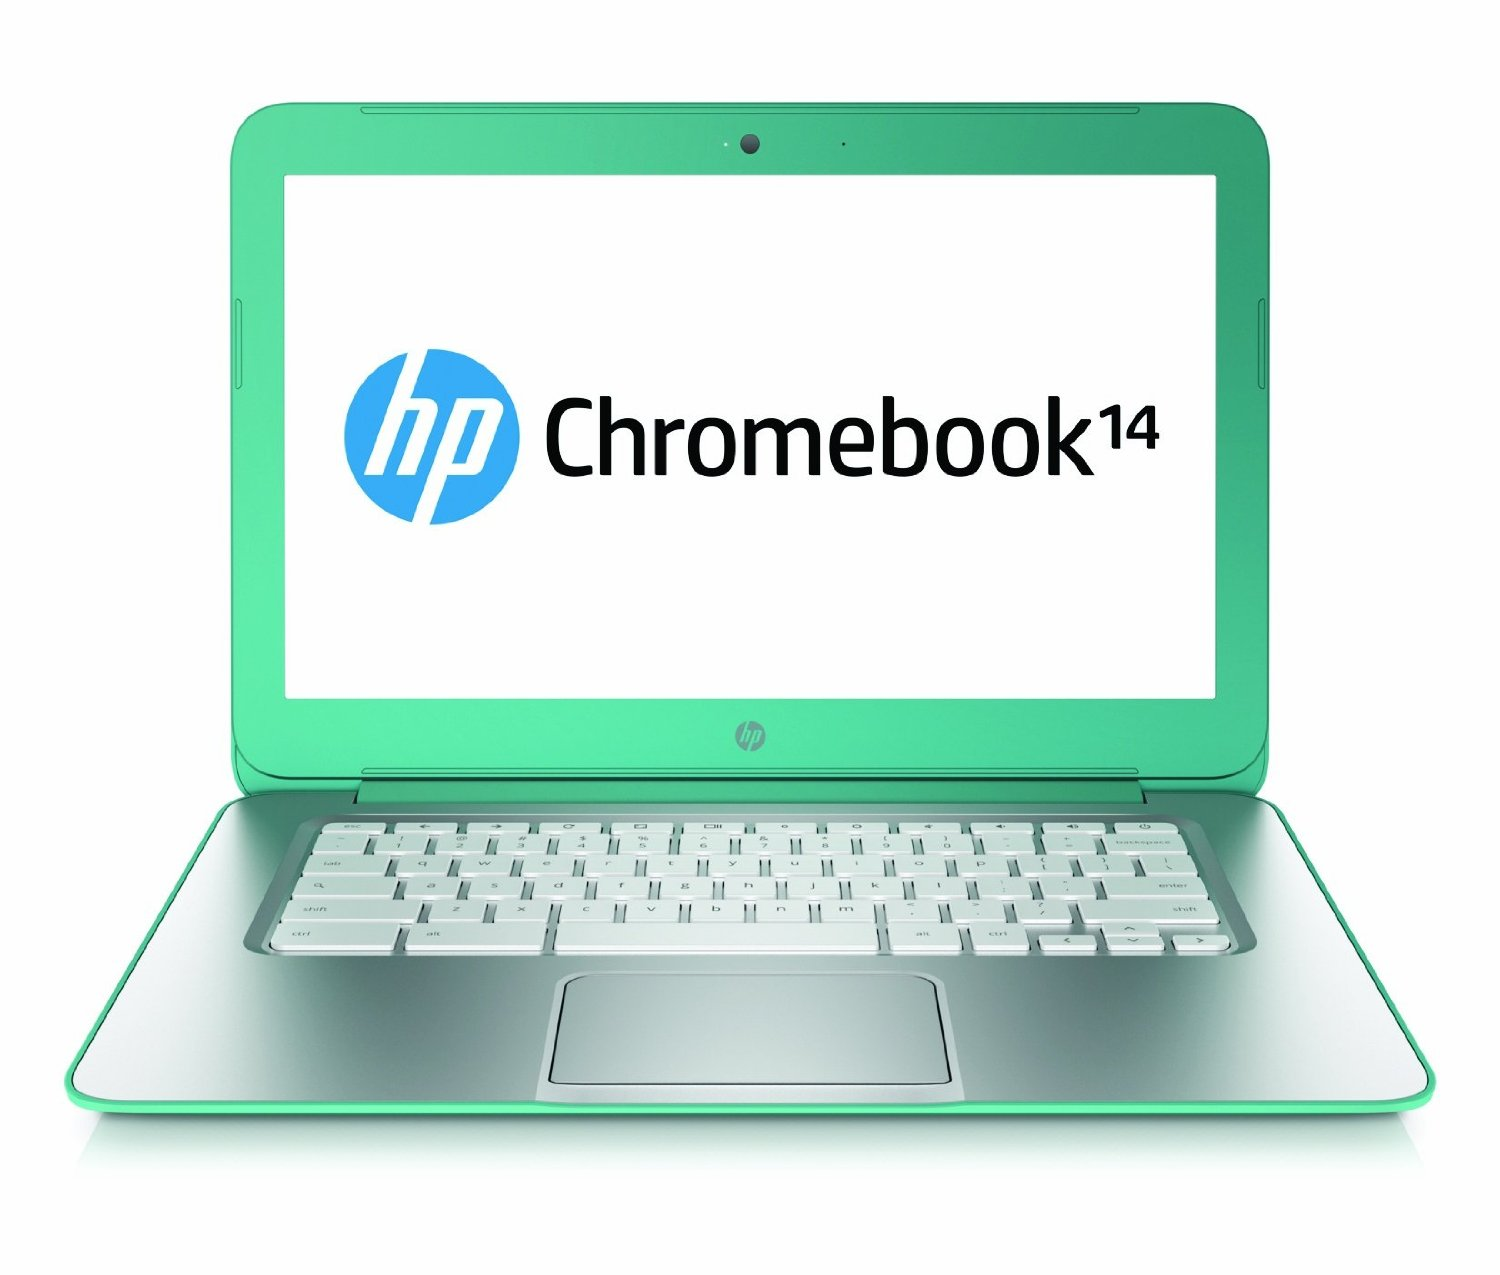 Hp Chromebook Images Pictures   Becuo 1500x1275